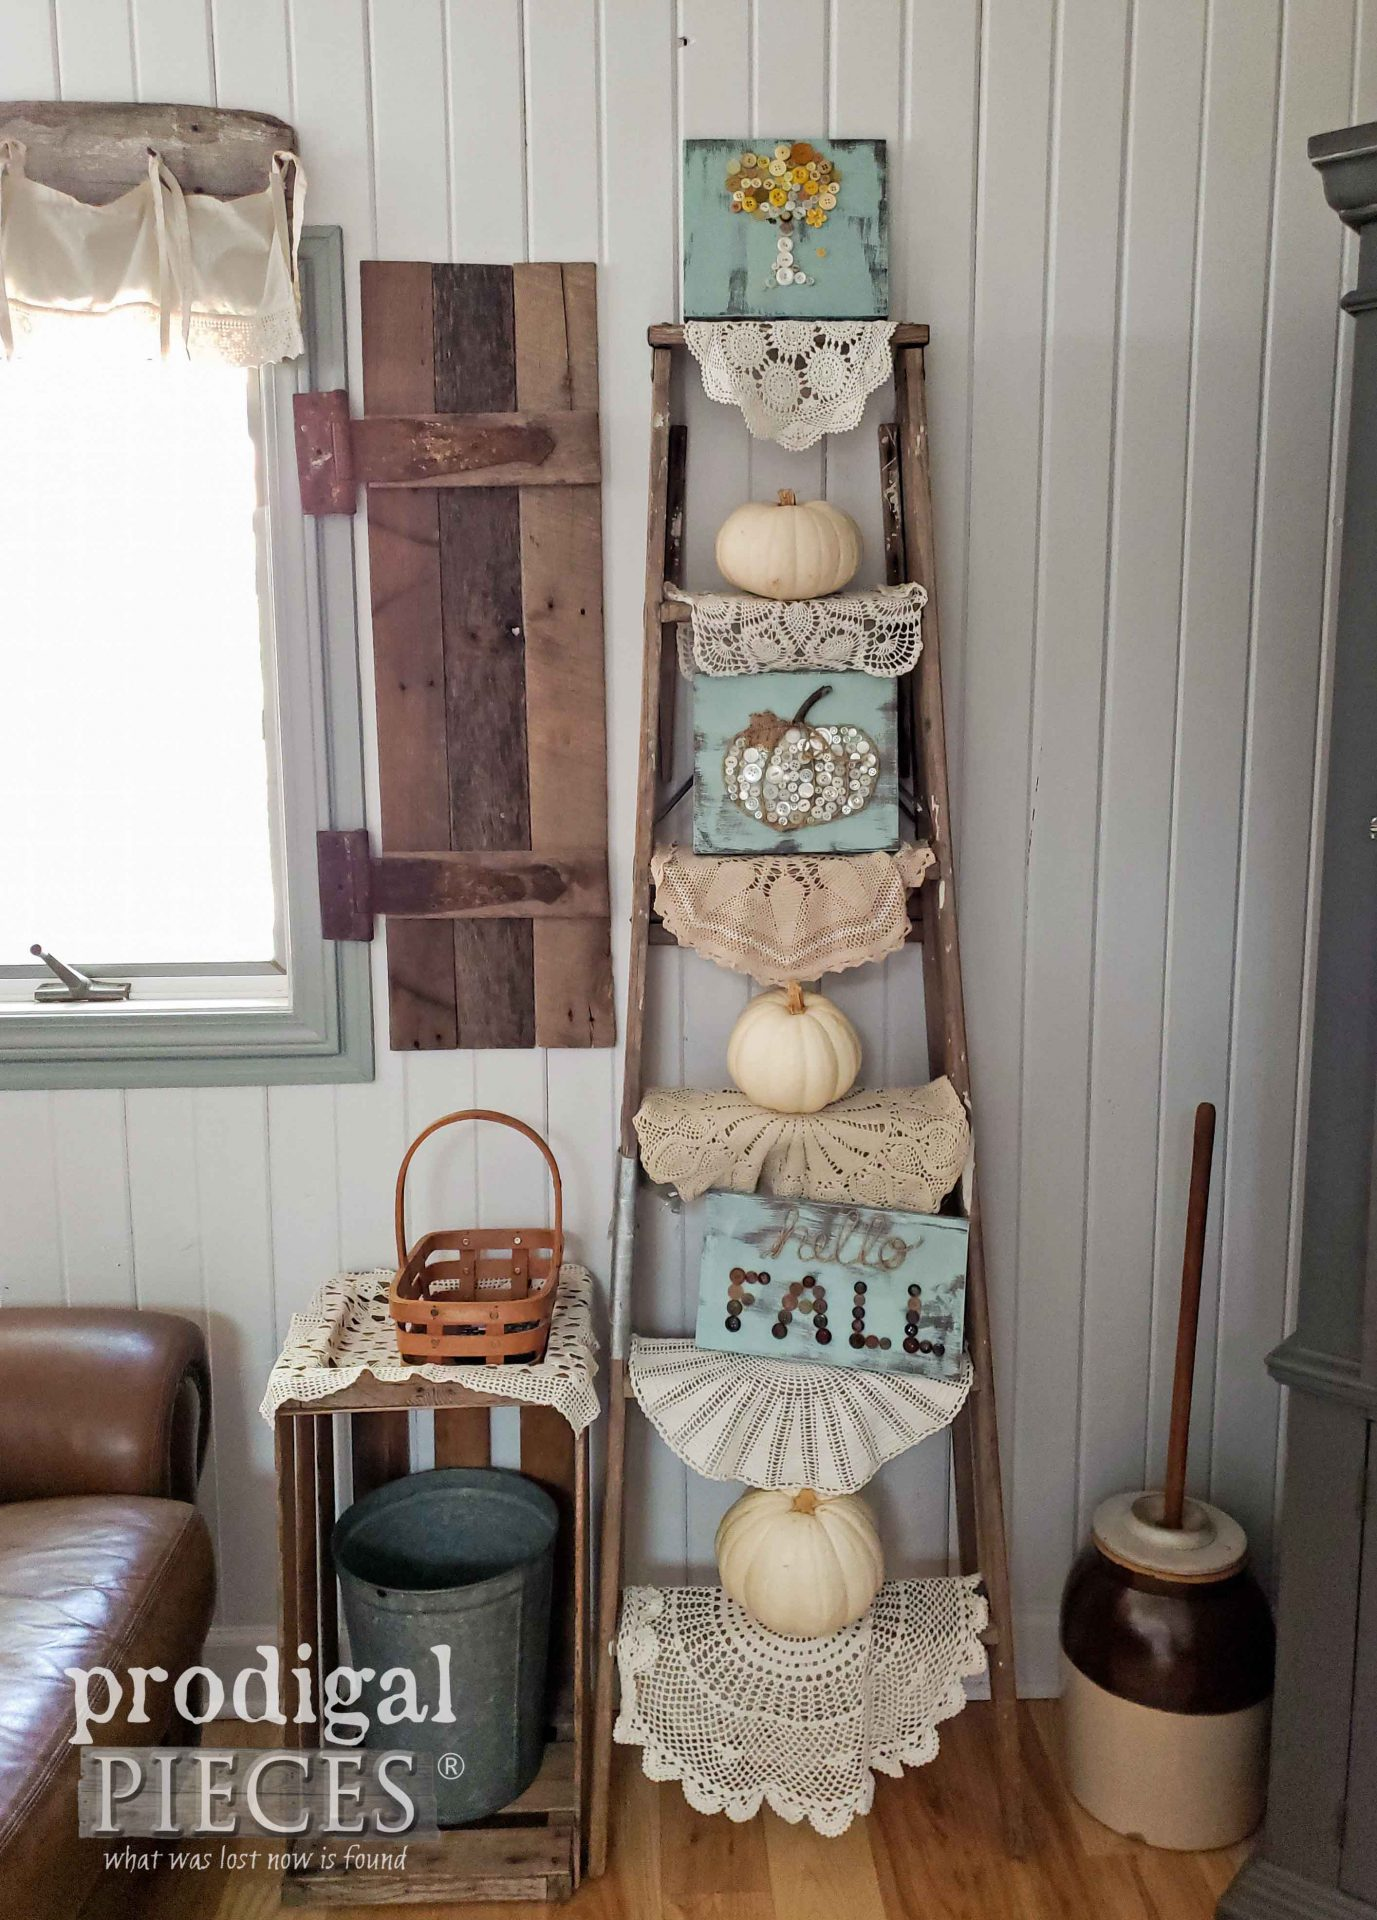 Old ladder filled with doilies, pumpkins, and button art created by Prodigal Pieces Kids CREATE | Video tutorial at prodigalpieces.com #prodigalpieces #diy #handmade #farmhouse #fall #home #homedecor #crafts